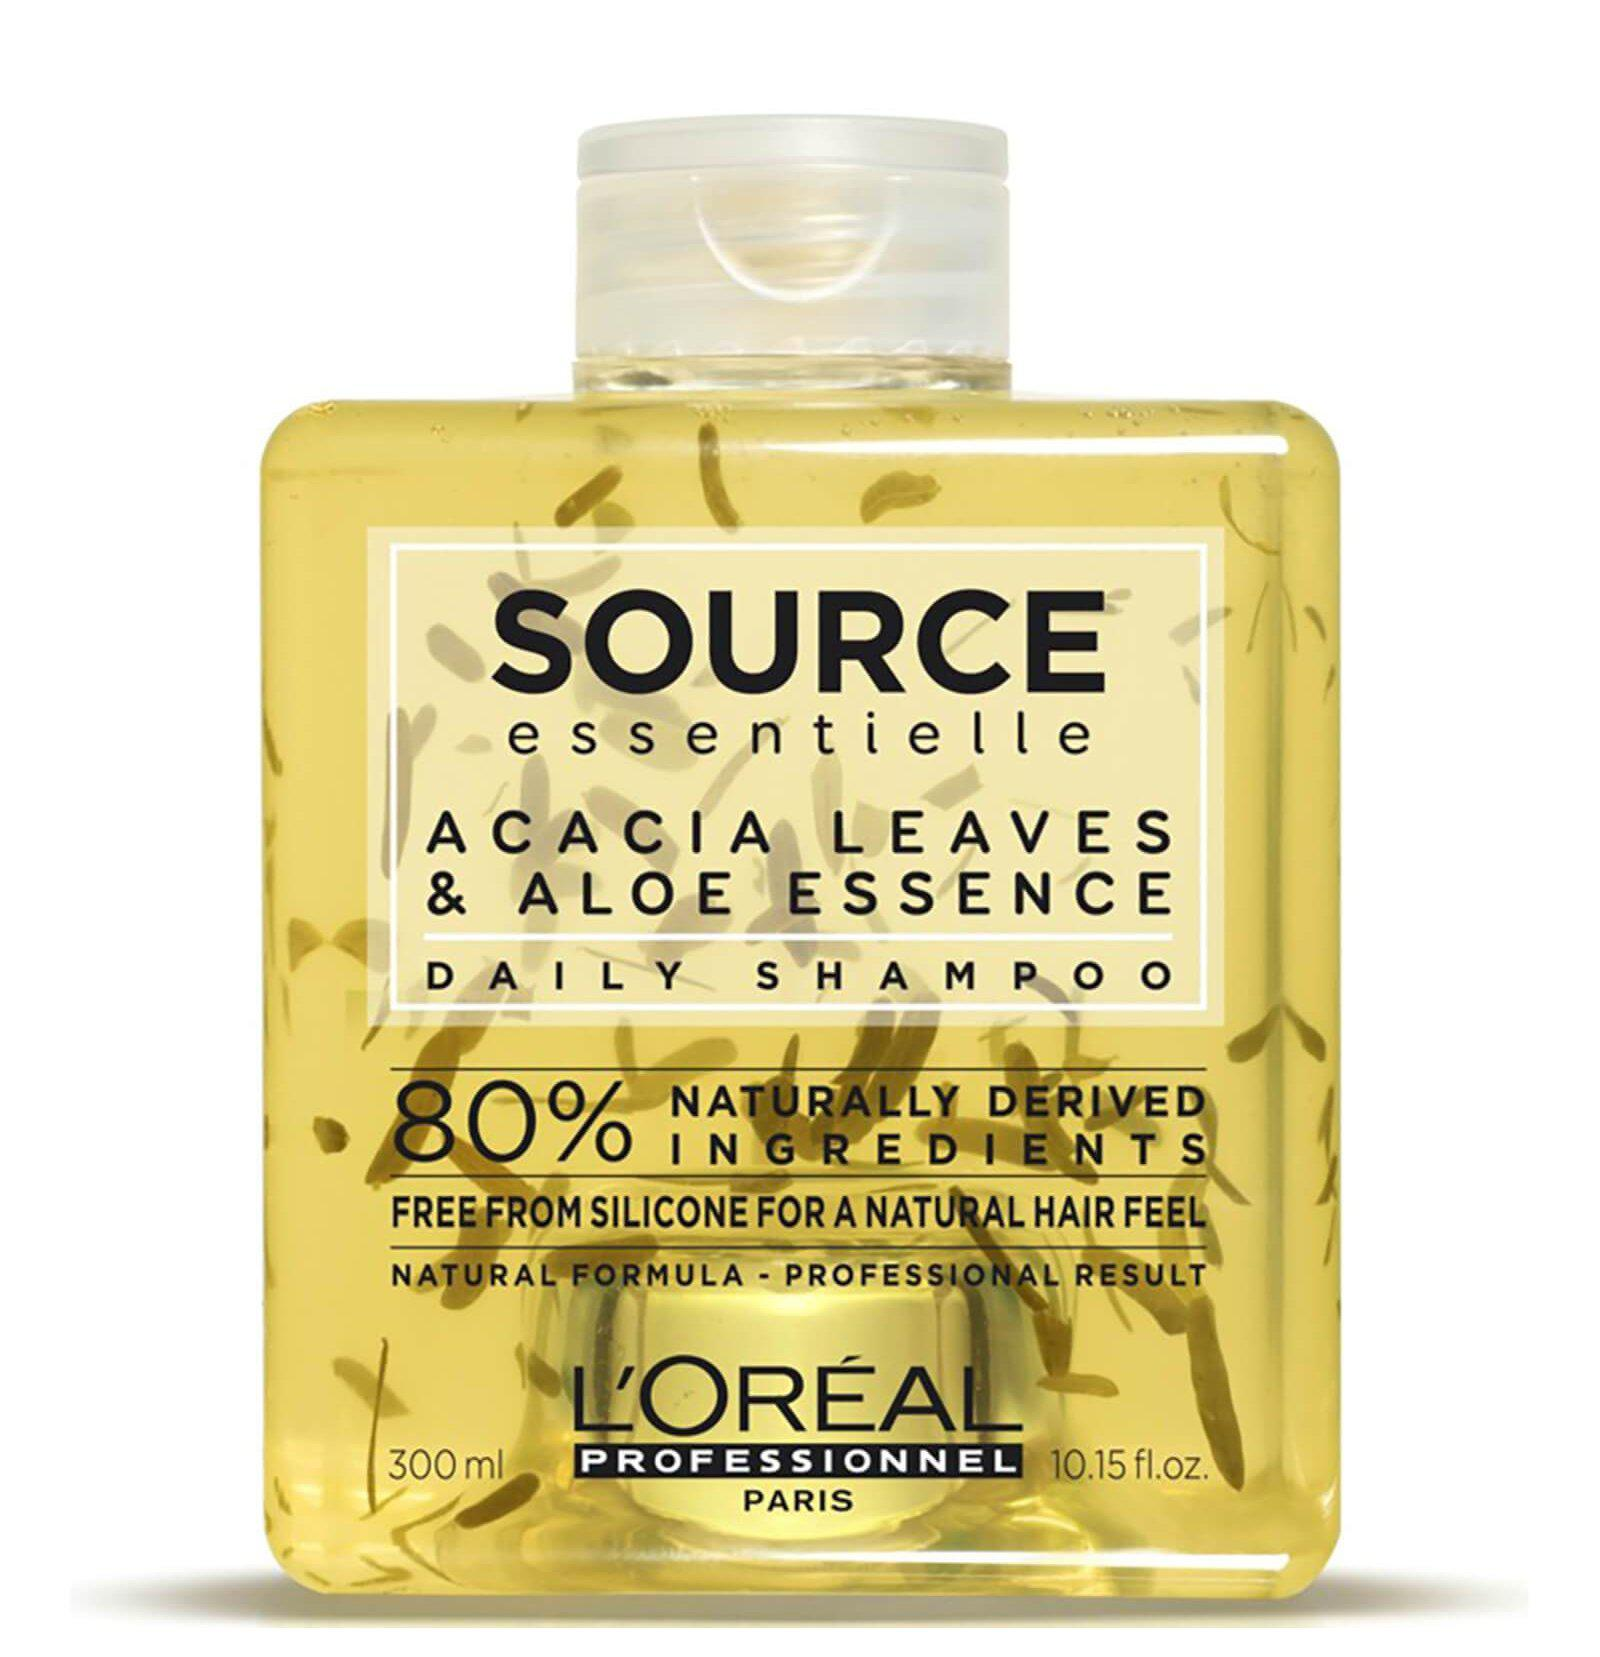 L'Oréal Professionnel Source Essentielle Acacia and aloe shampoo 300ml 80% natural origin ingredients Free from silicone for a natural hair feel Embrace naturality with the Daily Shampoo for normal to fine hair. Daily shampoo gently cleanses and purifies the scalp to eliminate impurities and excess oil. With acacia lea